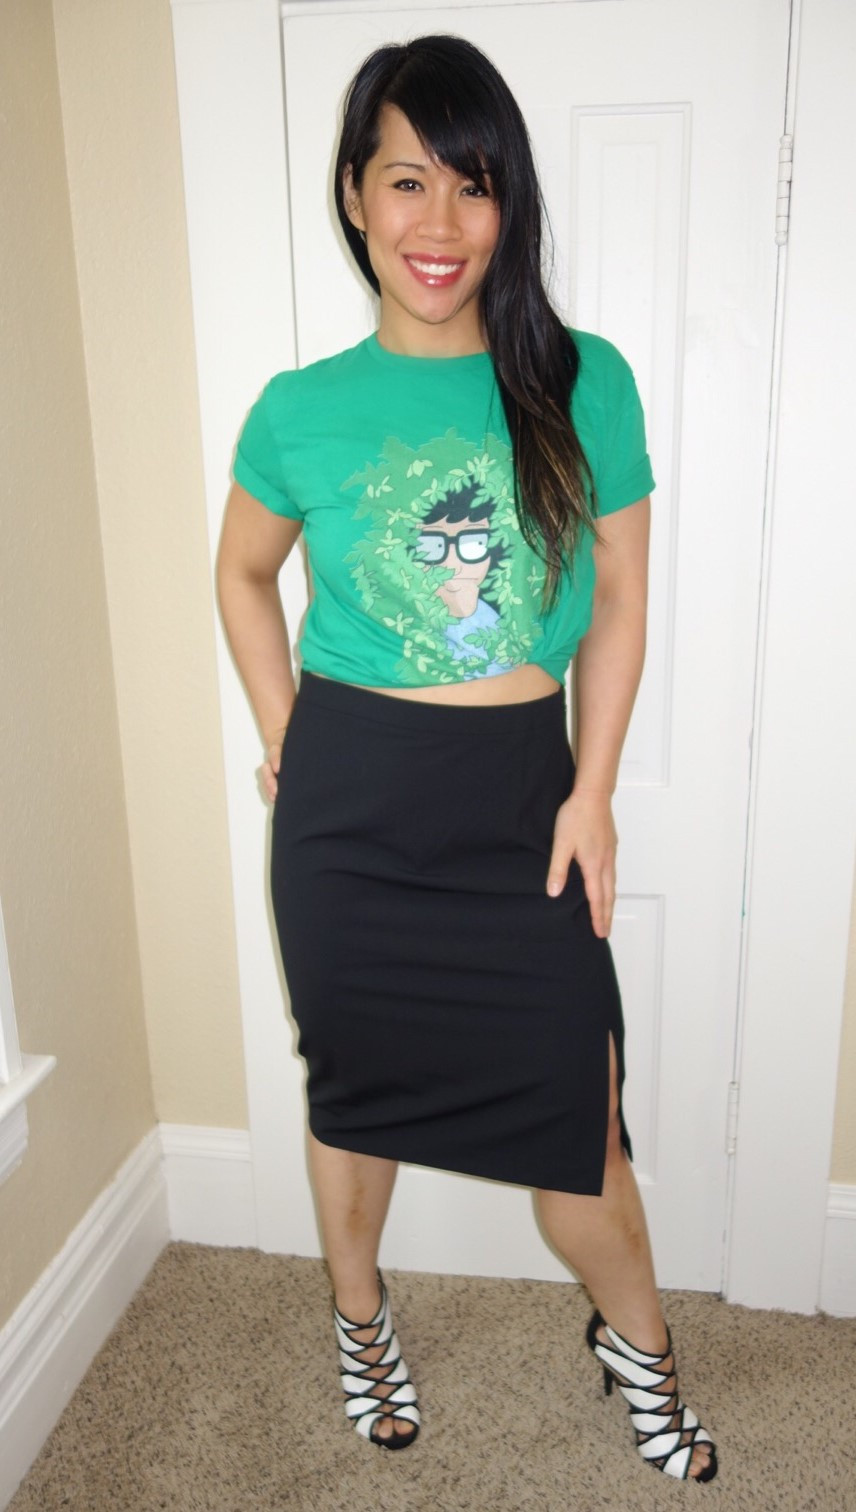 Kat wearing graphic tee with pencil skirt